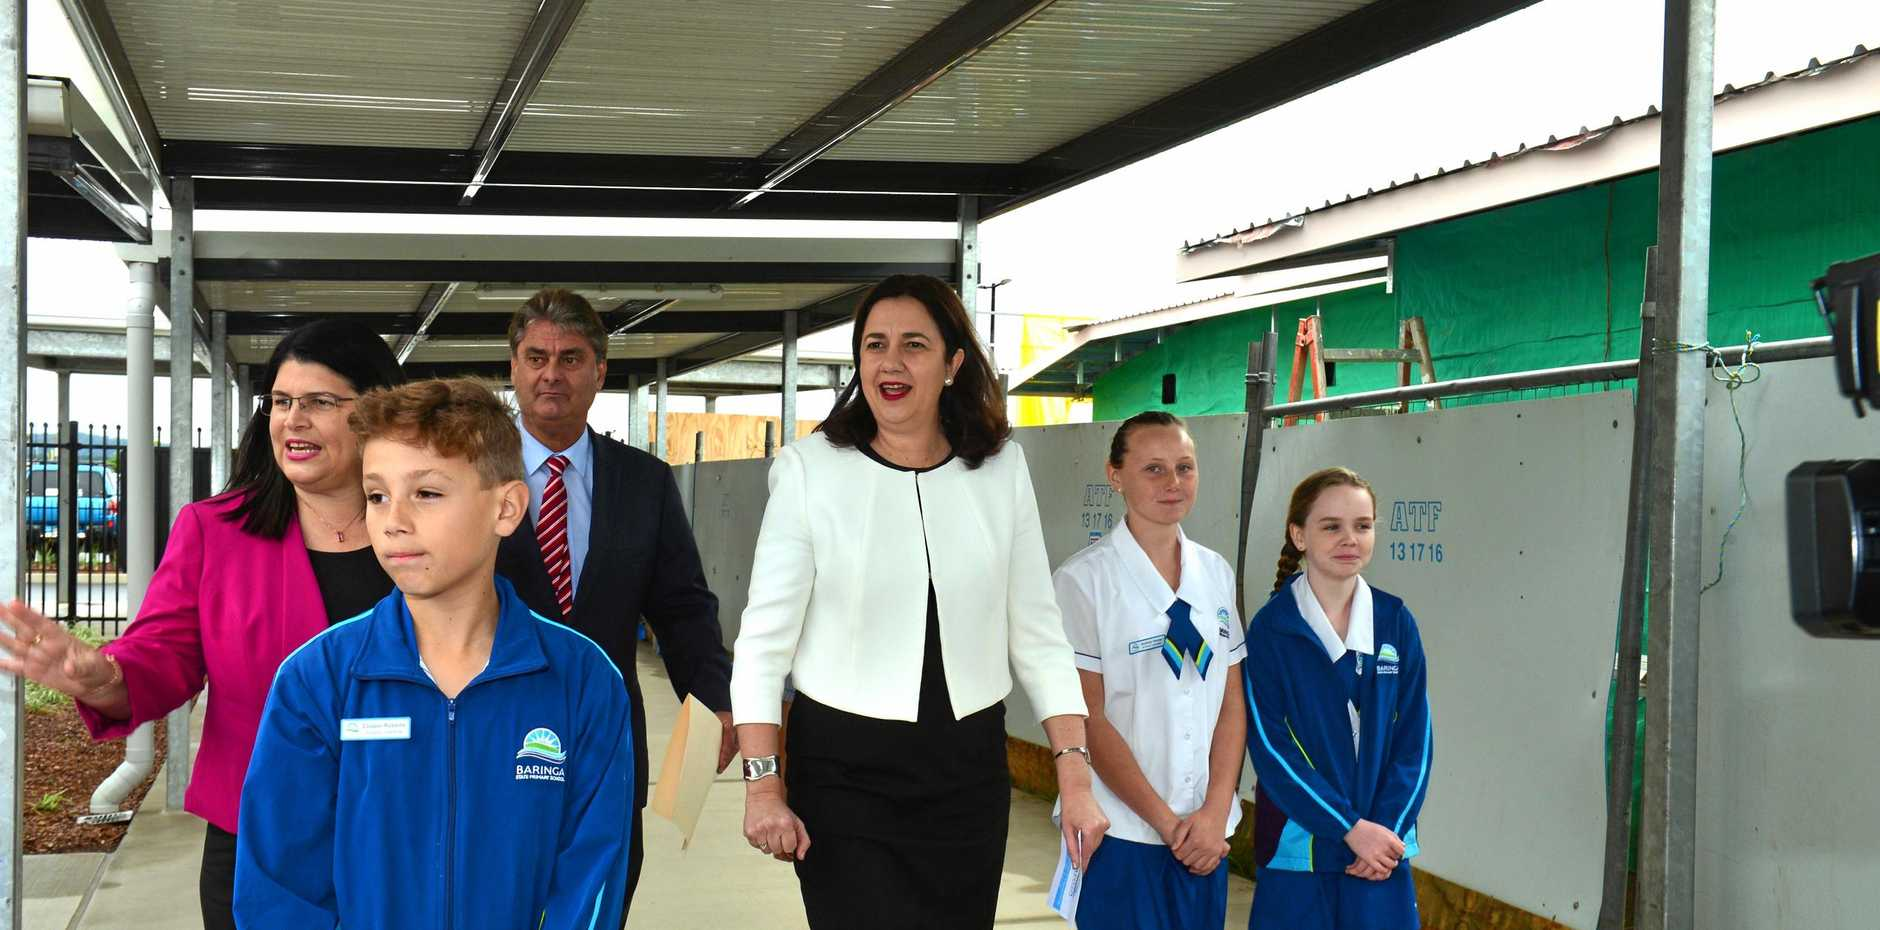 Touring Baringa State Primary School before its official opening ceremony are (from left) education minister Grace Grace, student Cooper Roberts, principal Noel Baggs, Premier Annastacia Palaszczuk and students Audrey Gaske and Chloe Broderick.